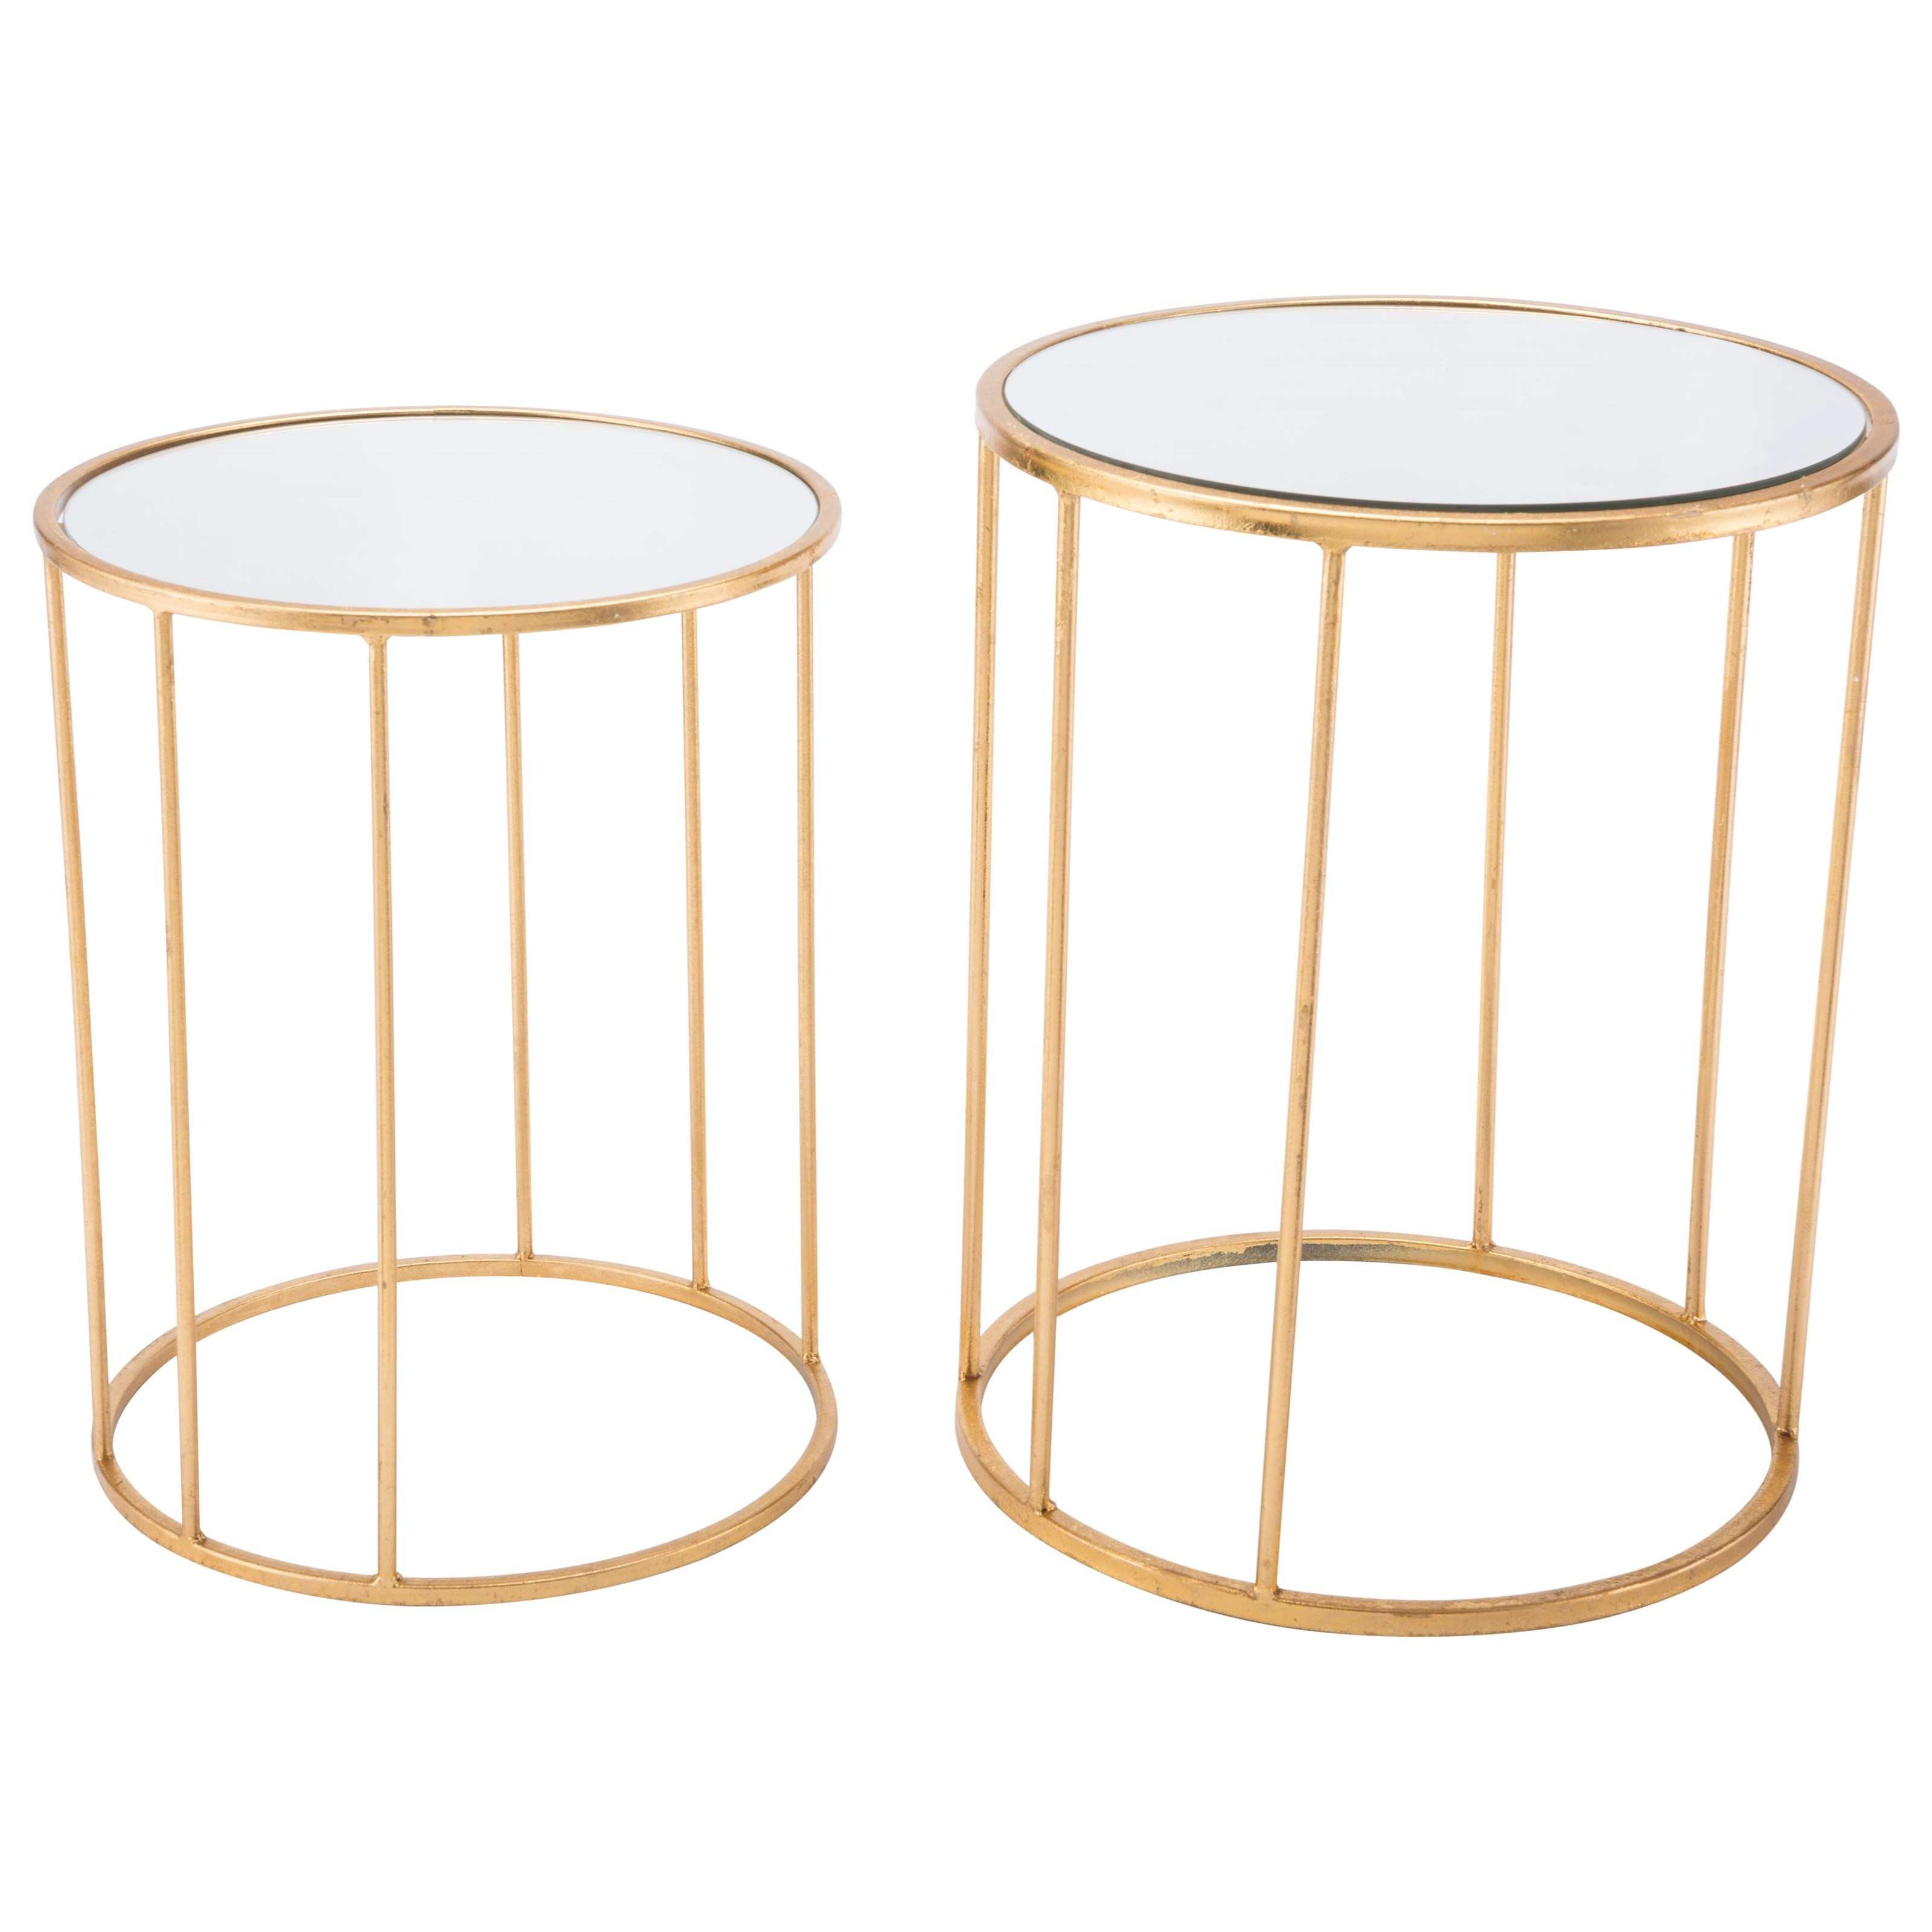 Zuo Accent Tables Finita Set 2 Nesting Round Tables - Item Number: A10762